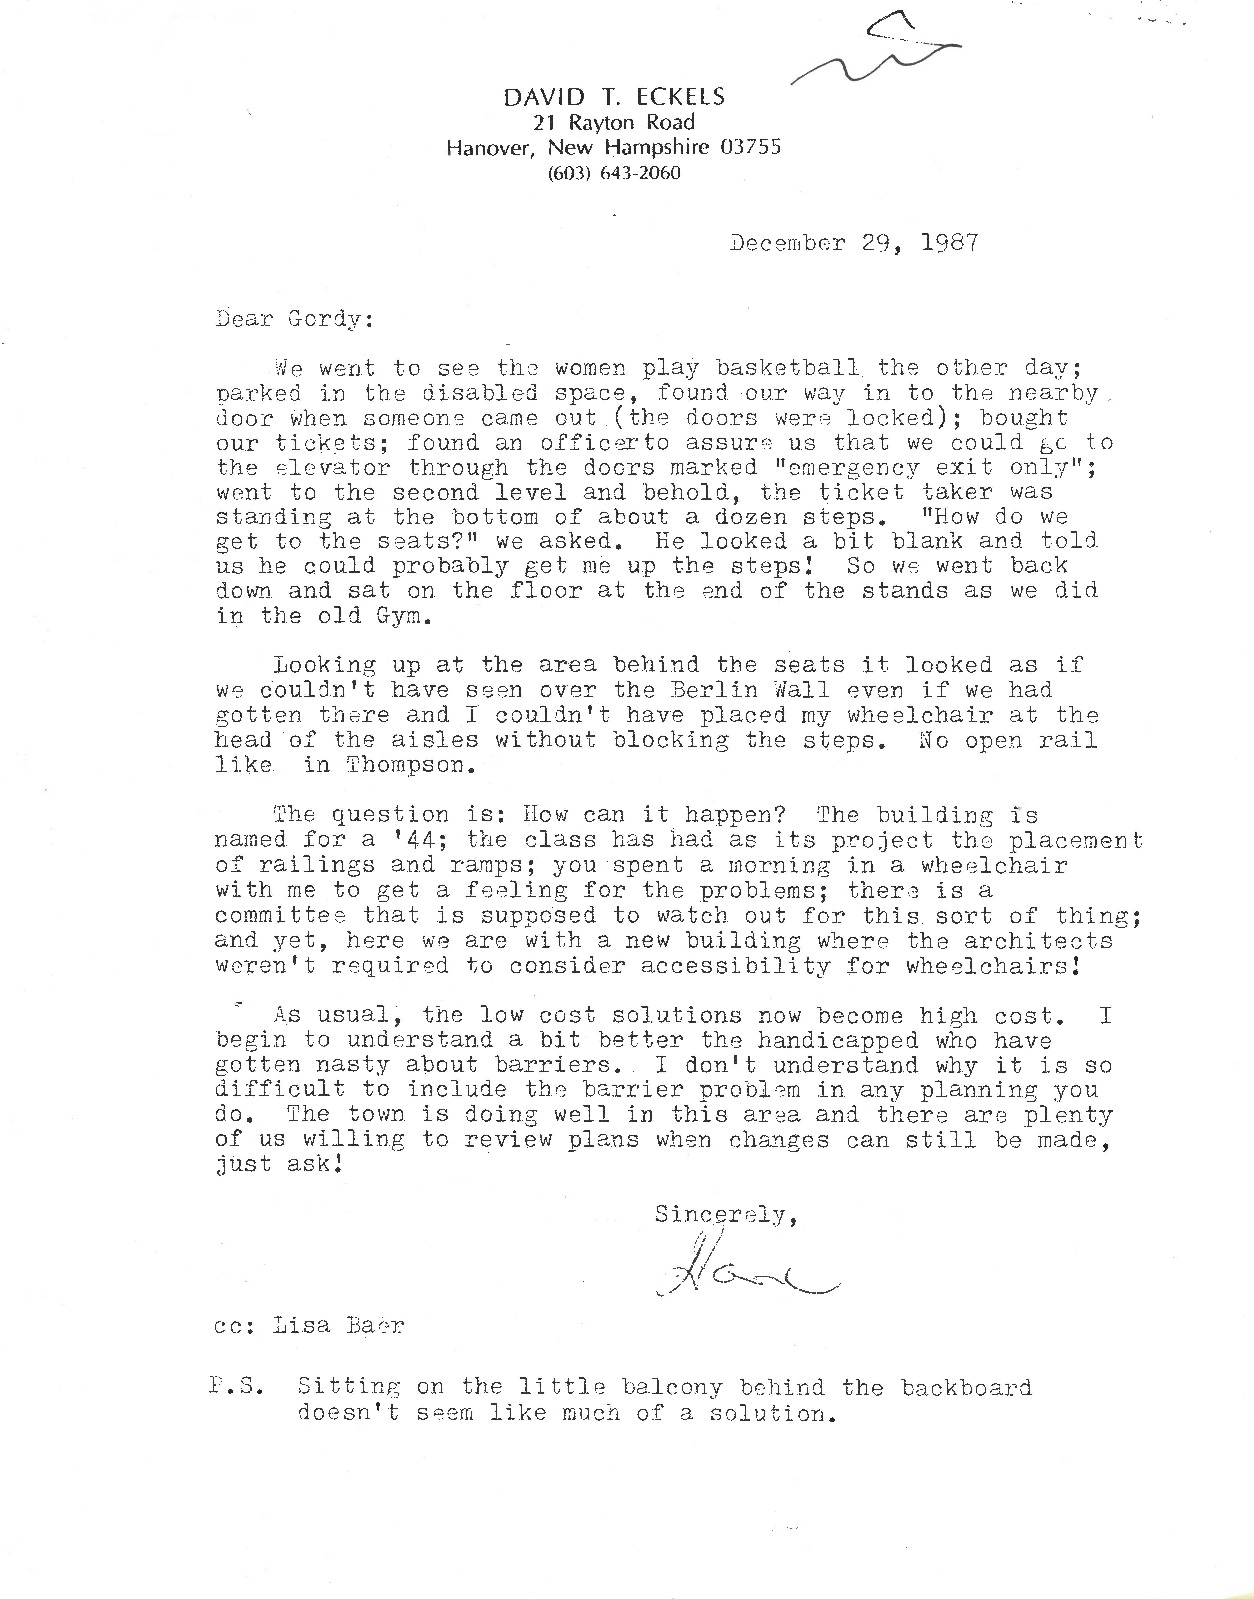 A letter from Eckels to Gordon DeWitt, recounting his negative experience attending a Women's Basketball game on campus due to accessibility issues.